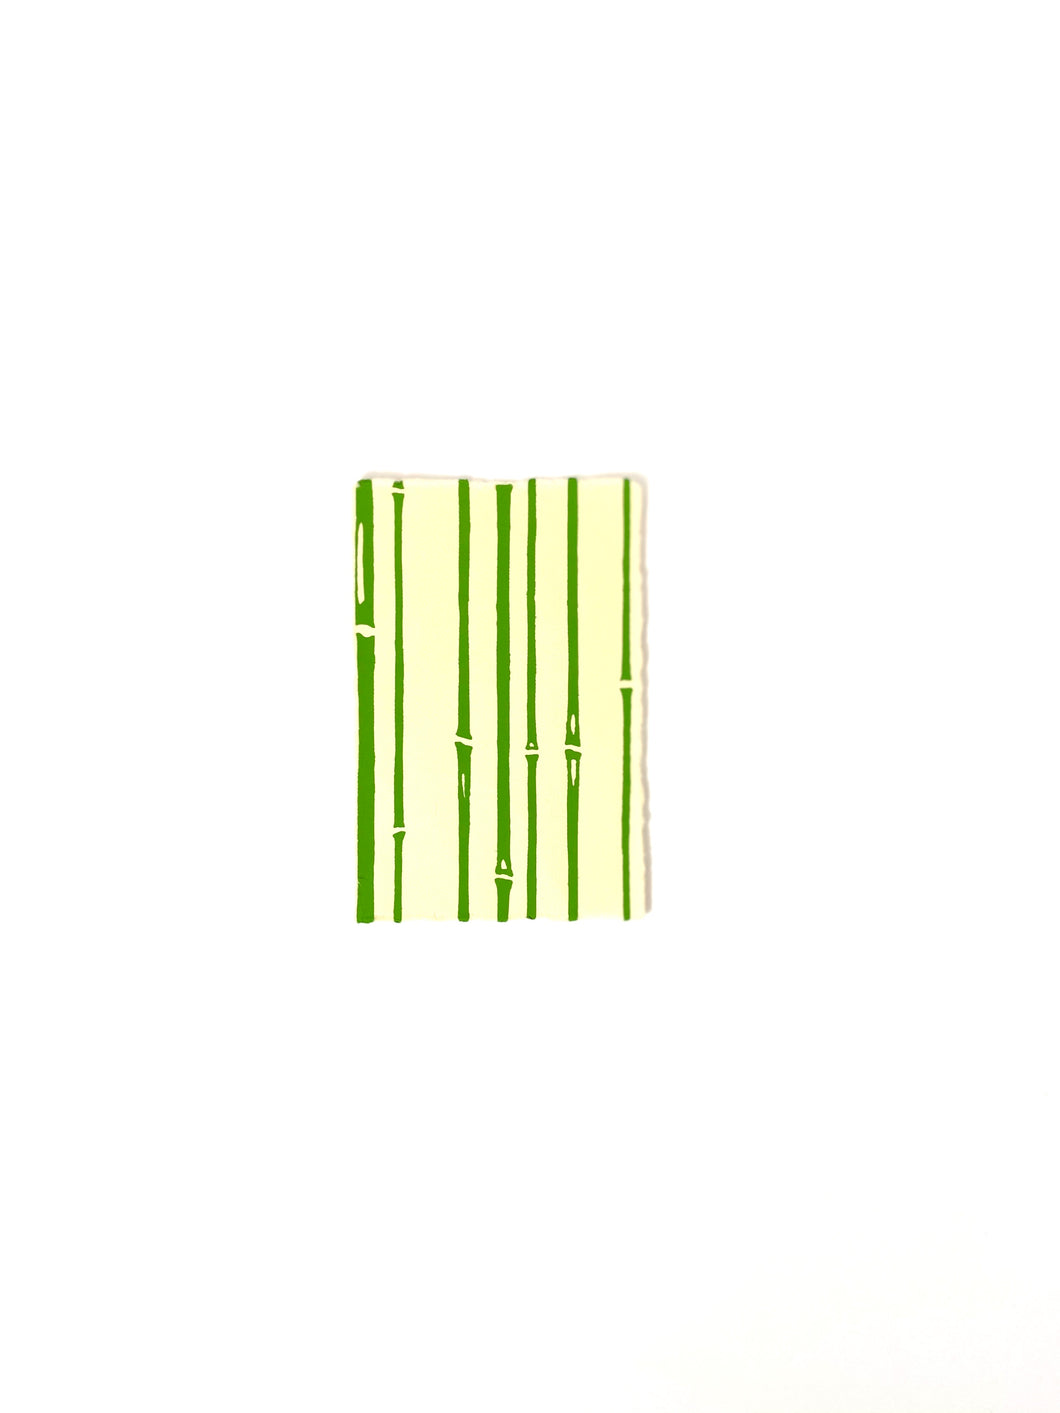 Japanese Washi Hand Printed Postcard Green Bamboo - 和紙絵ハガキ 竹/若竹